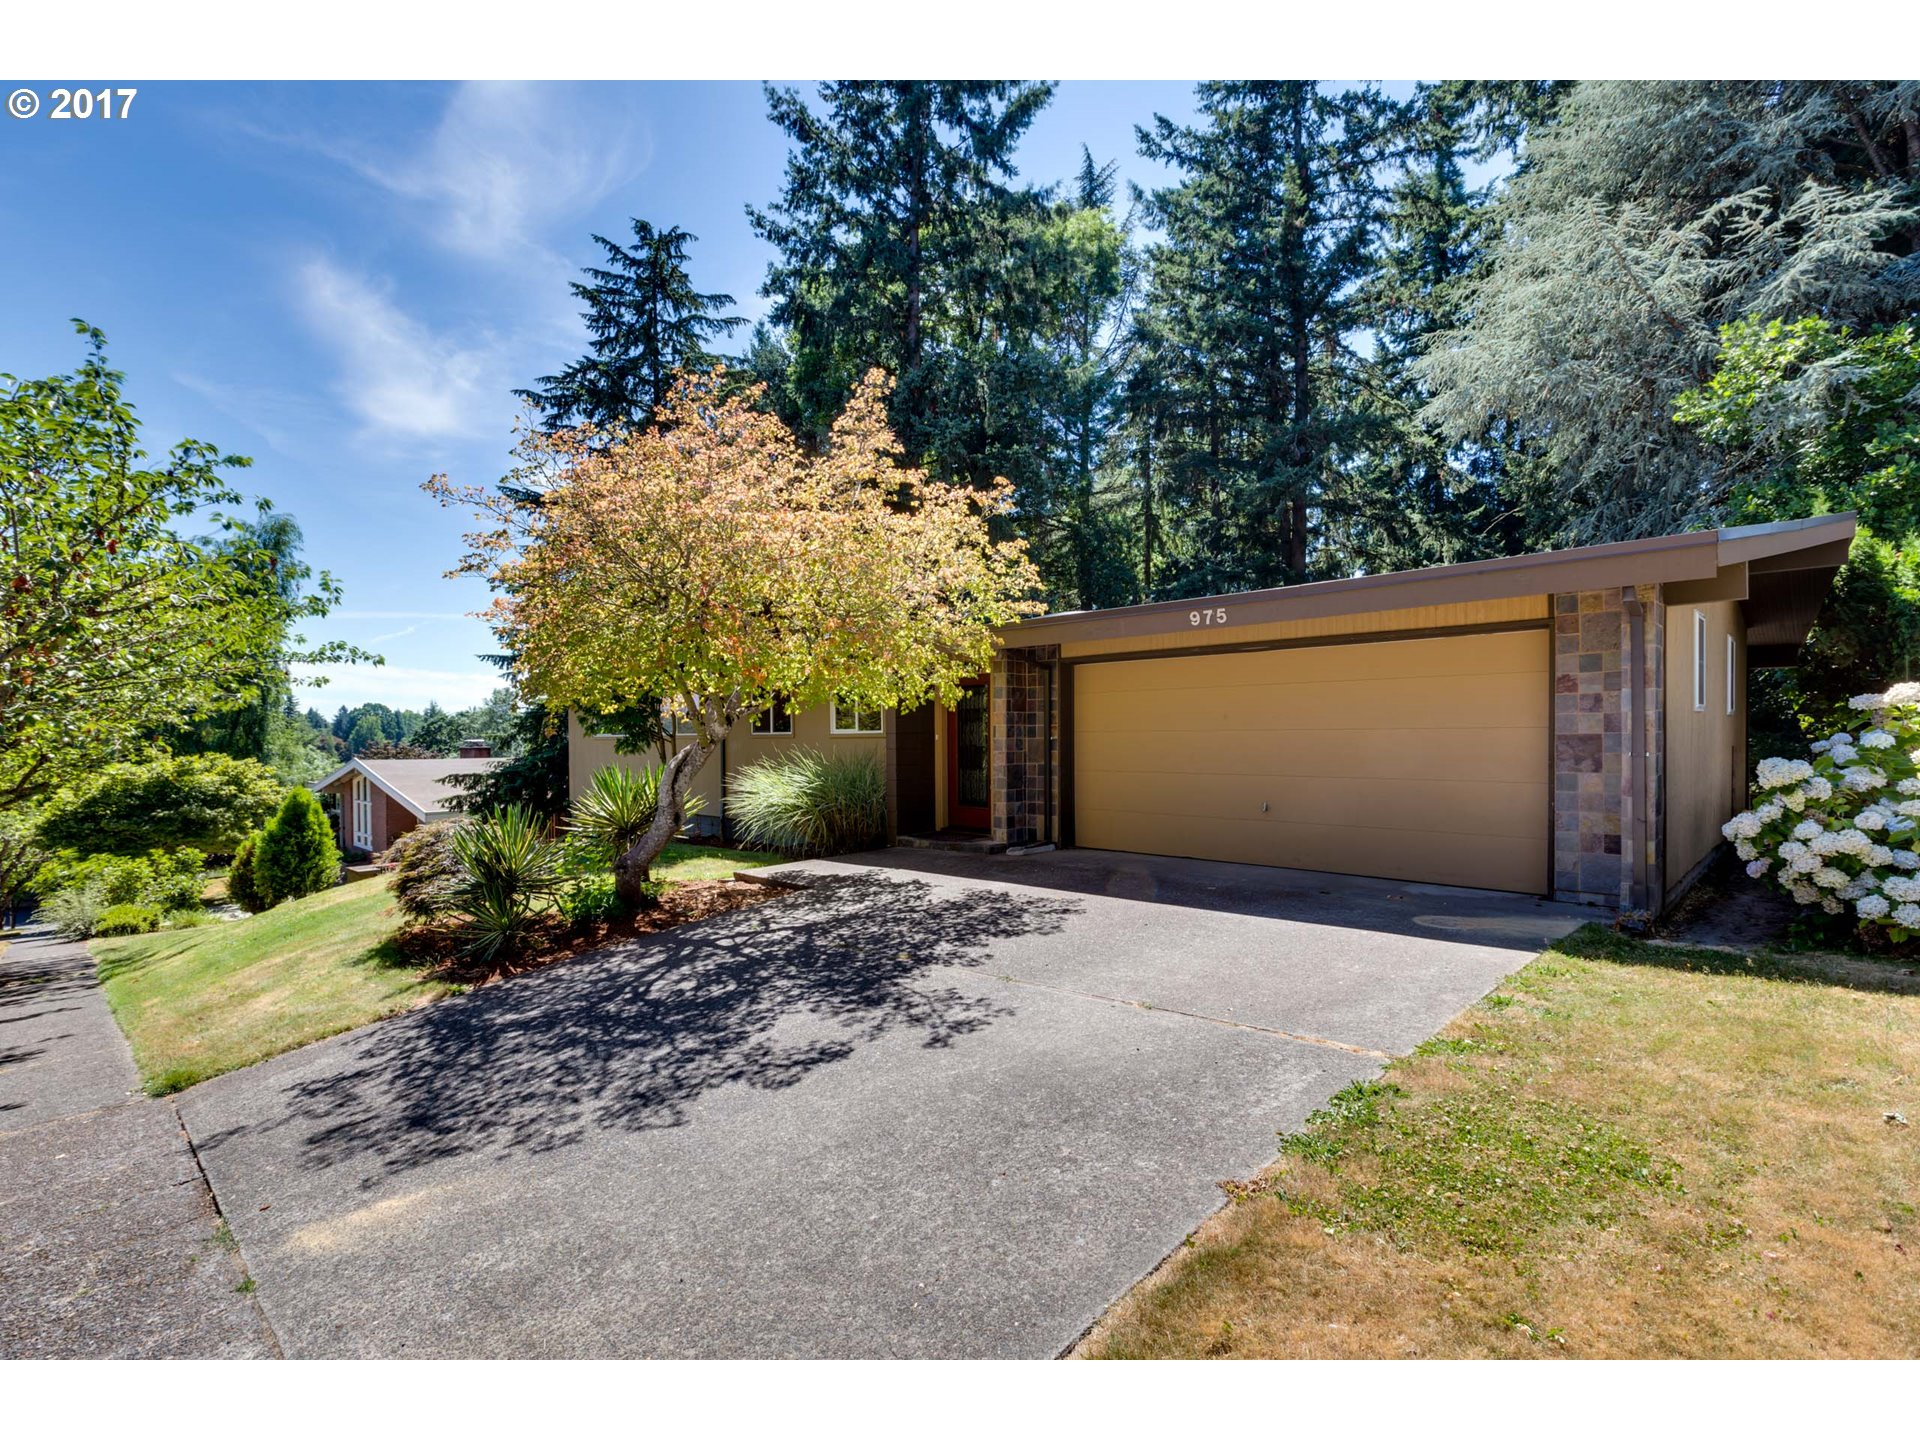 Exquisite Mid-century designed for privacy. Hardwood floor, vaulted ceilings, slate and carpet through-out. New carpet throughout. Perfect for entertaining. Easy access to Sunset hwy and downtown Portland. Room for pool table, wine bar, and media room is already wired.